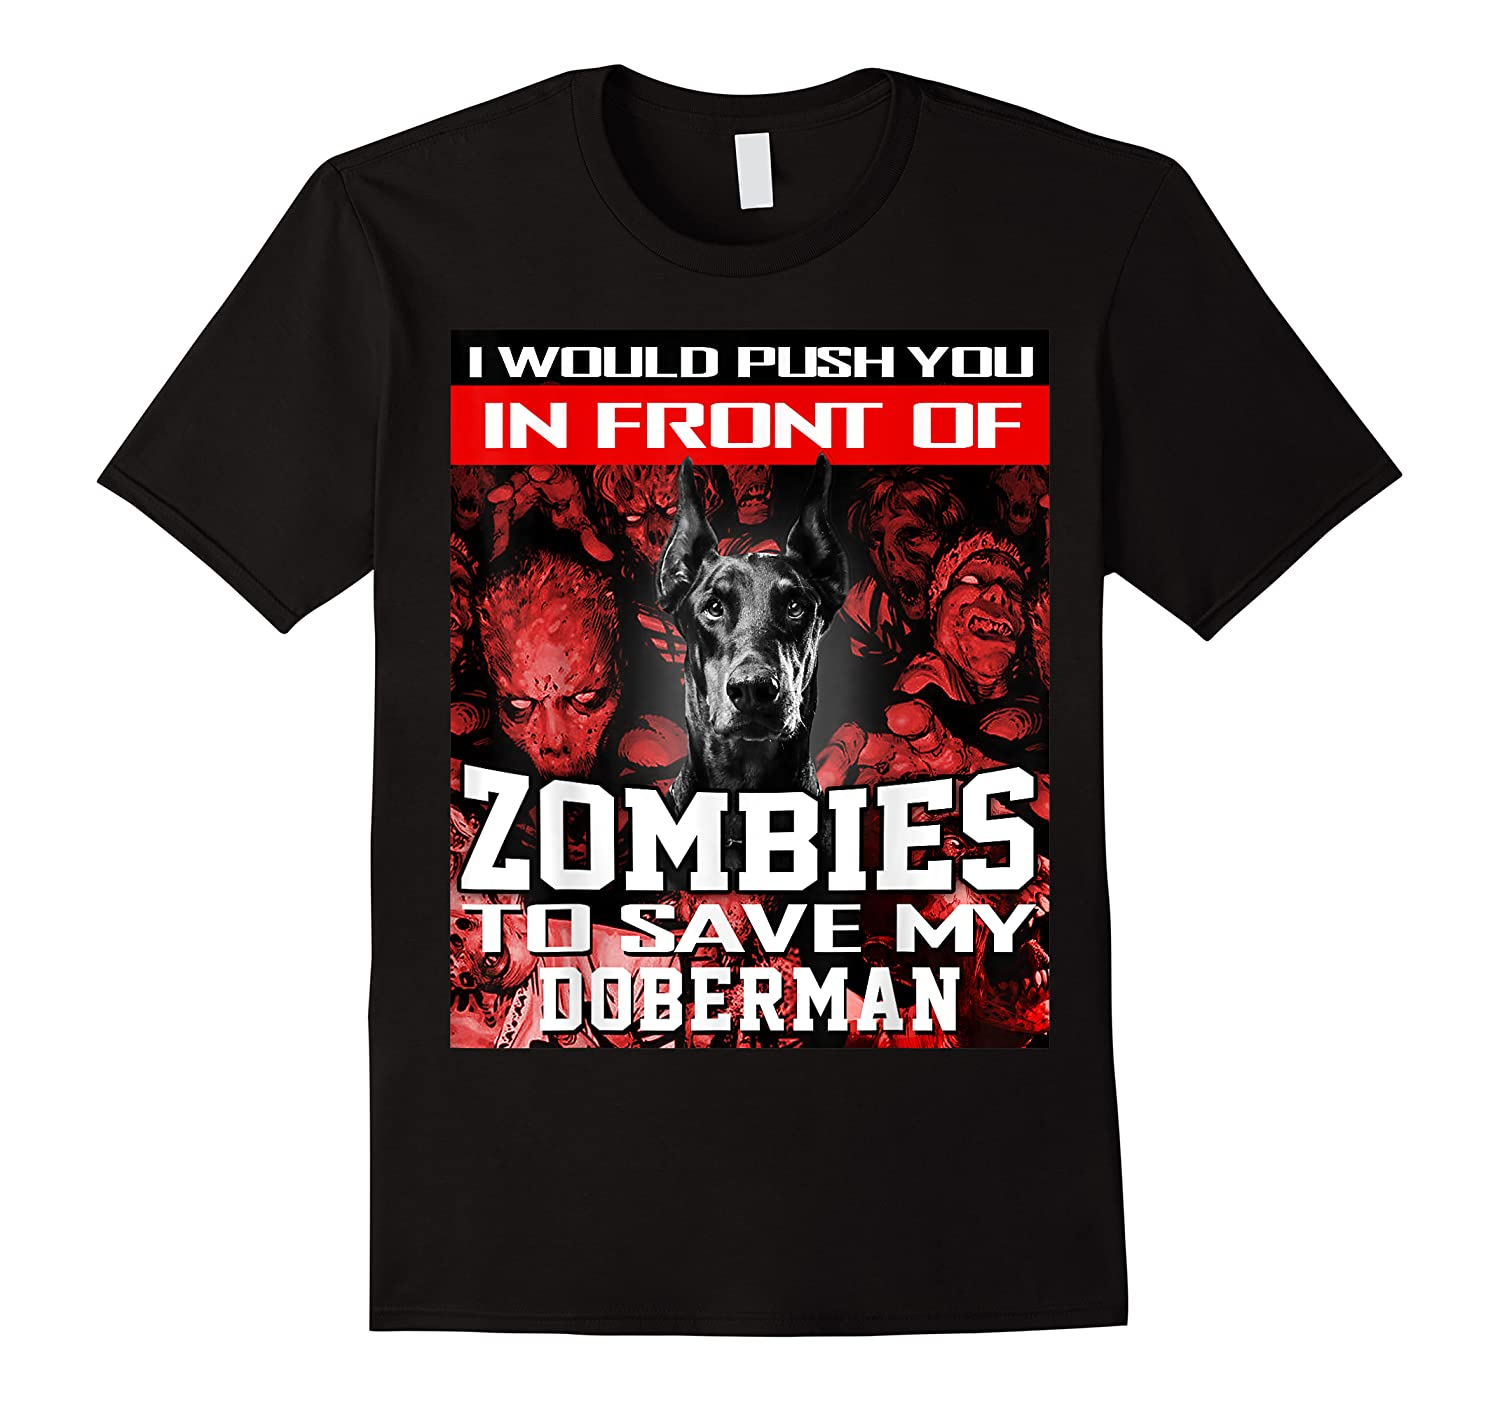 In Front Of Zombies To Save My Doberman Halloween Saying T-shirt